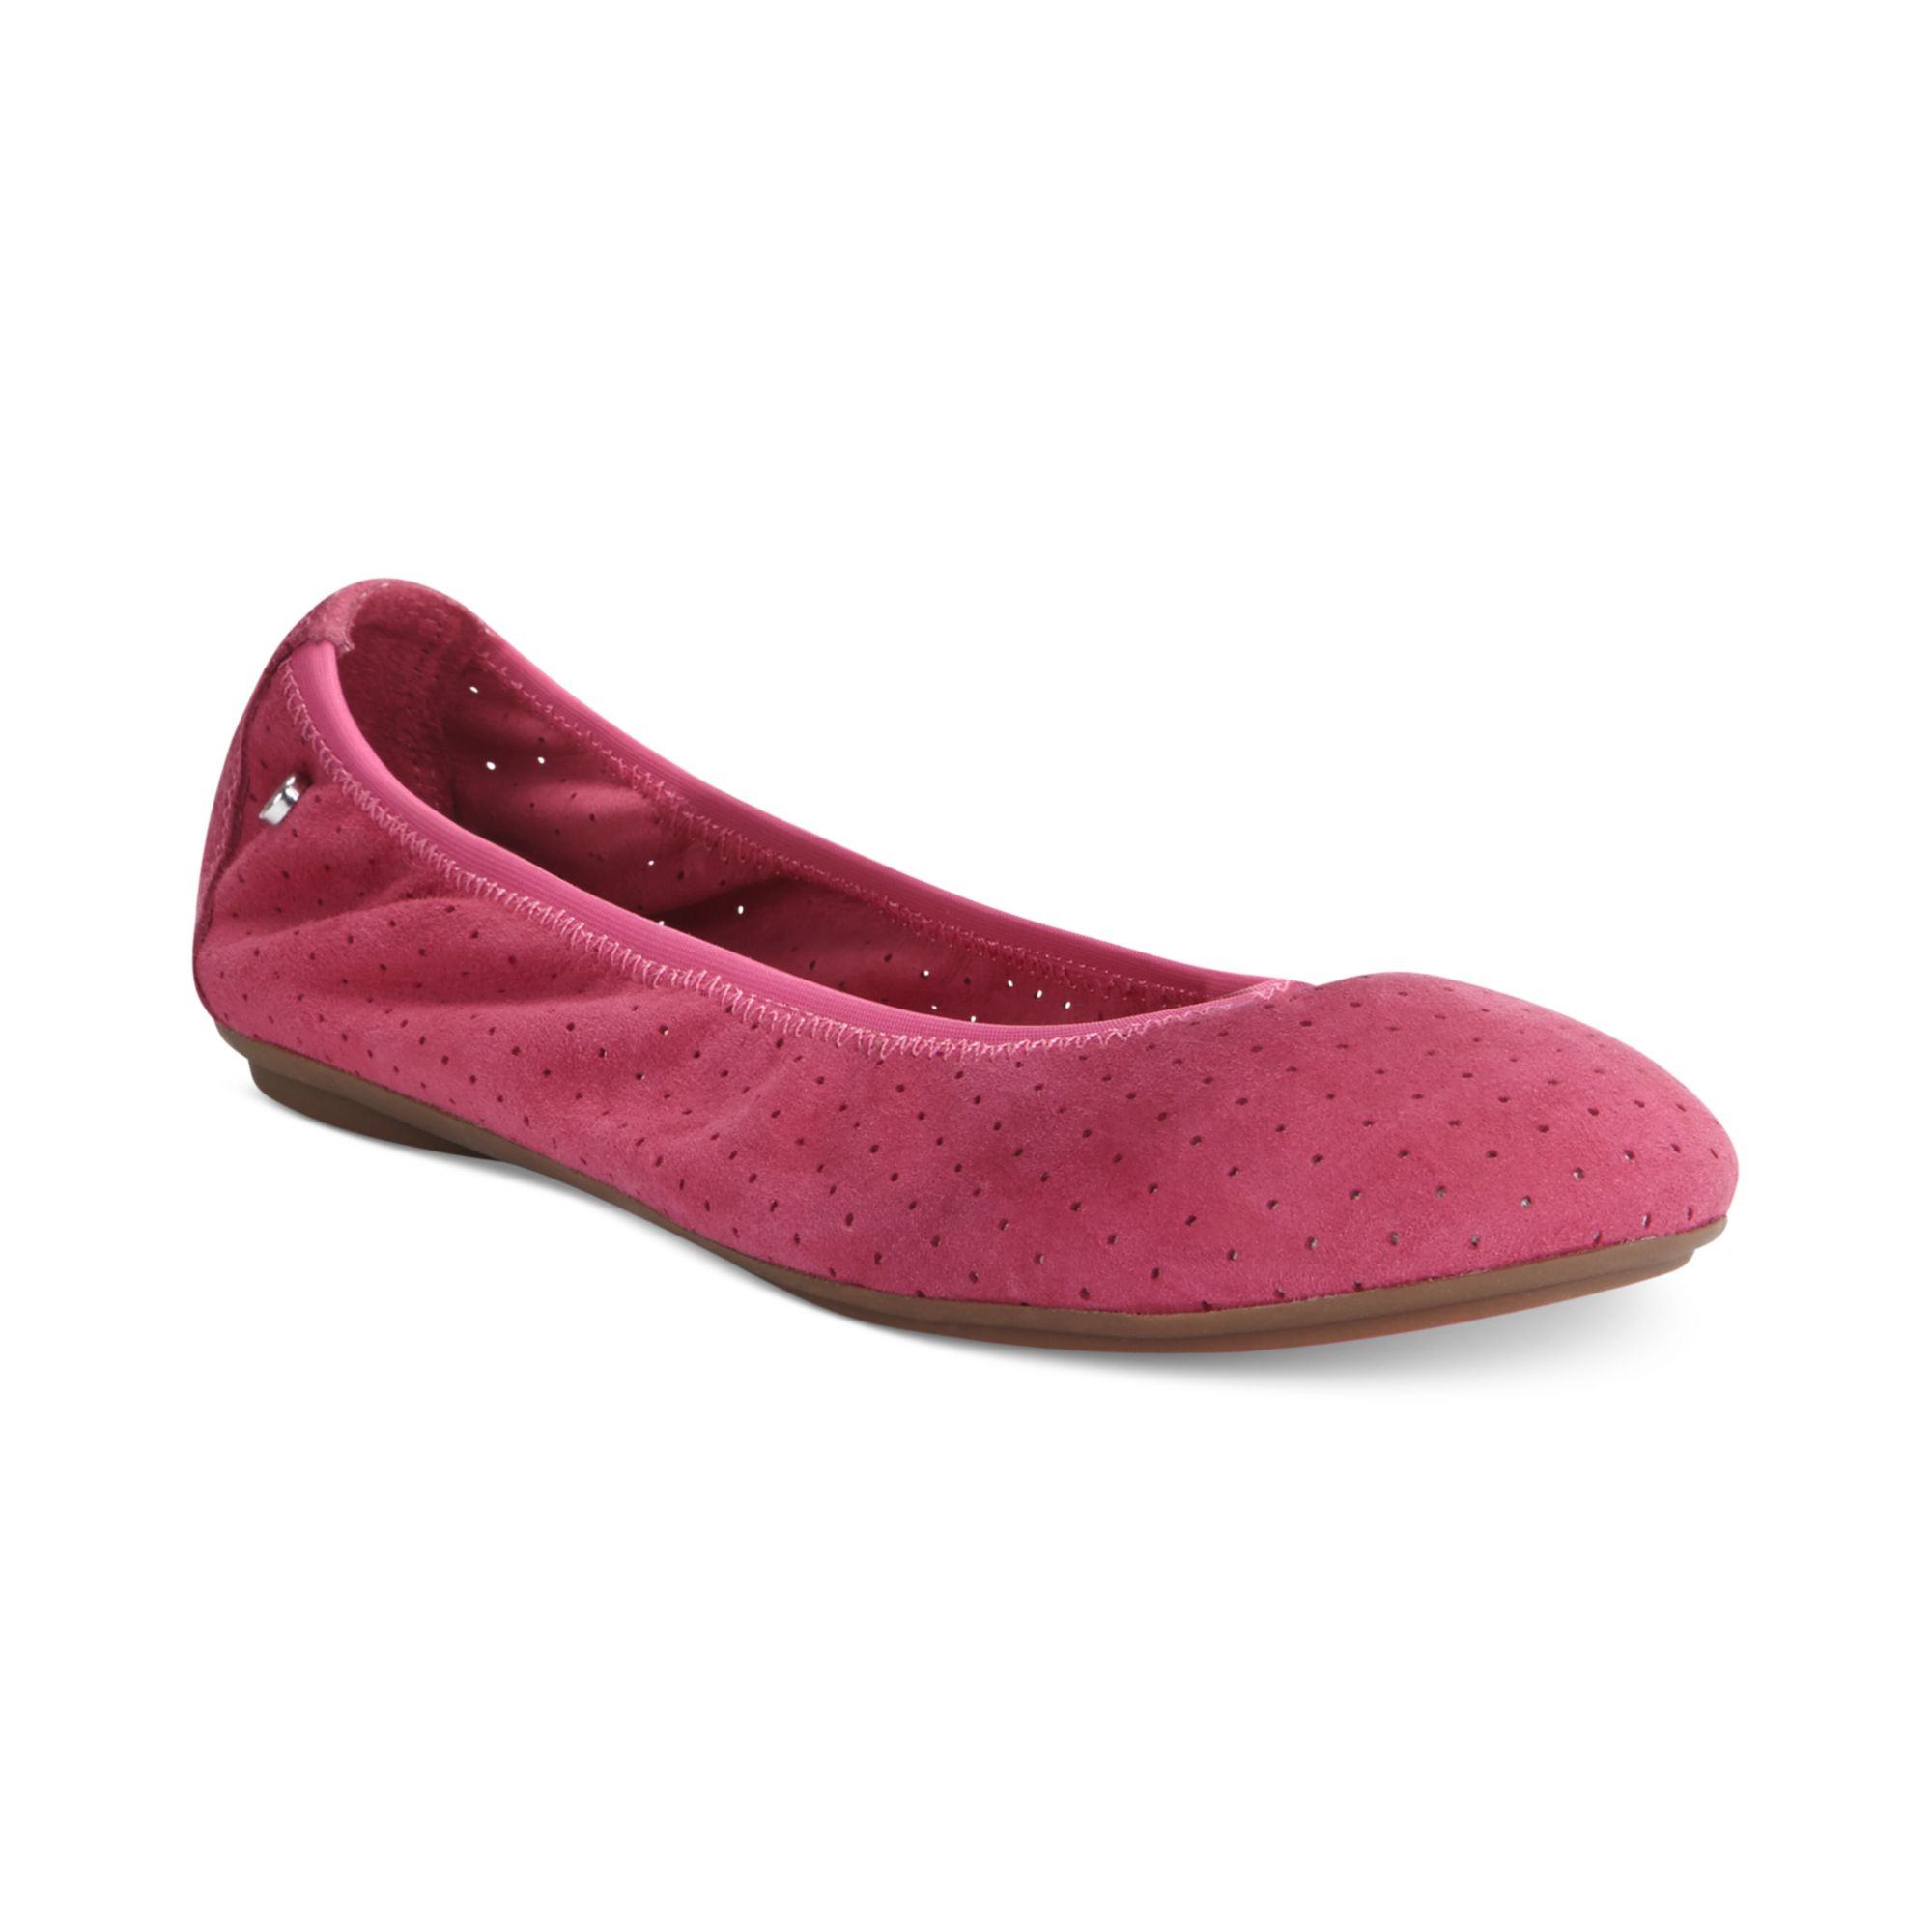 Lyst Hush Puppies Womens Chaste Ballet Flats In Pink